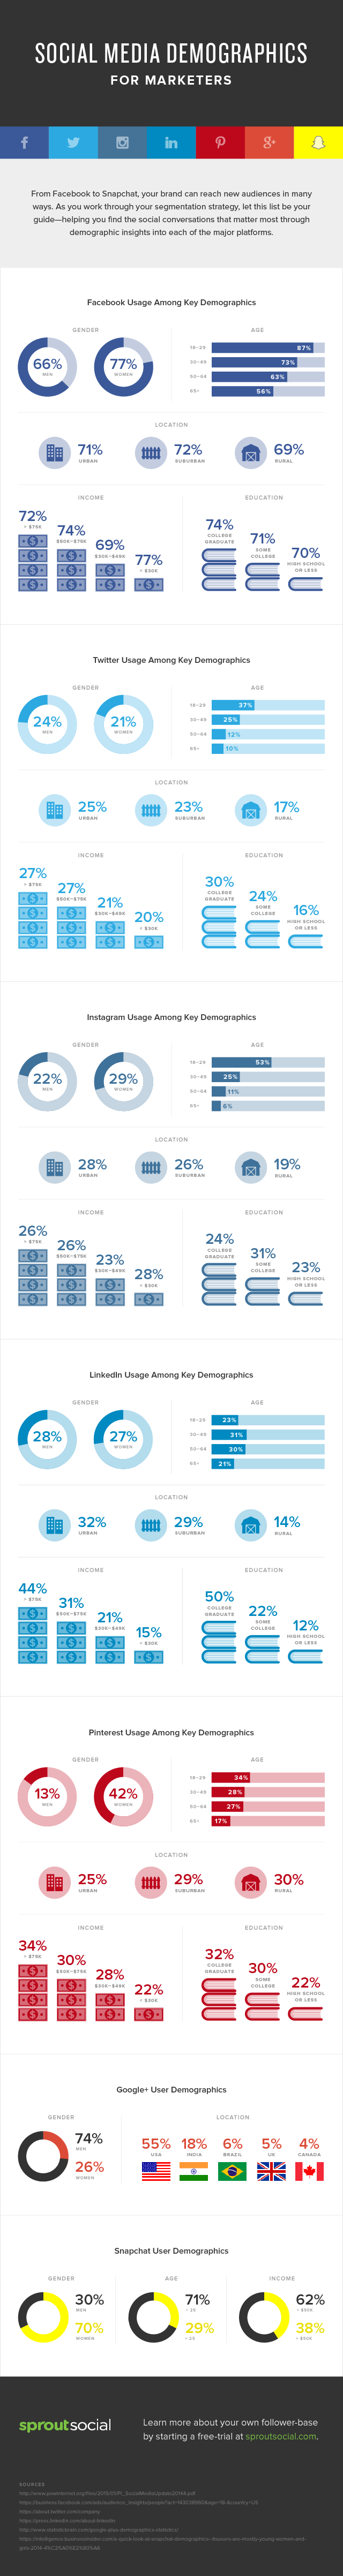 Social Demographics Infographic